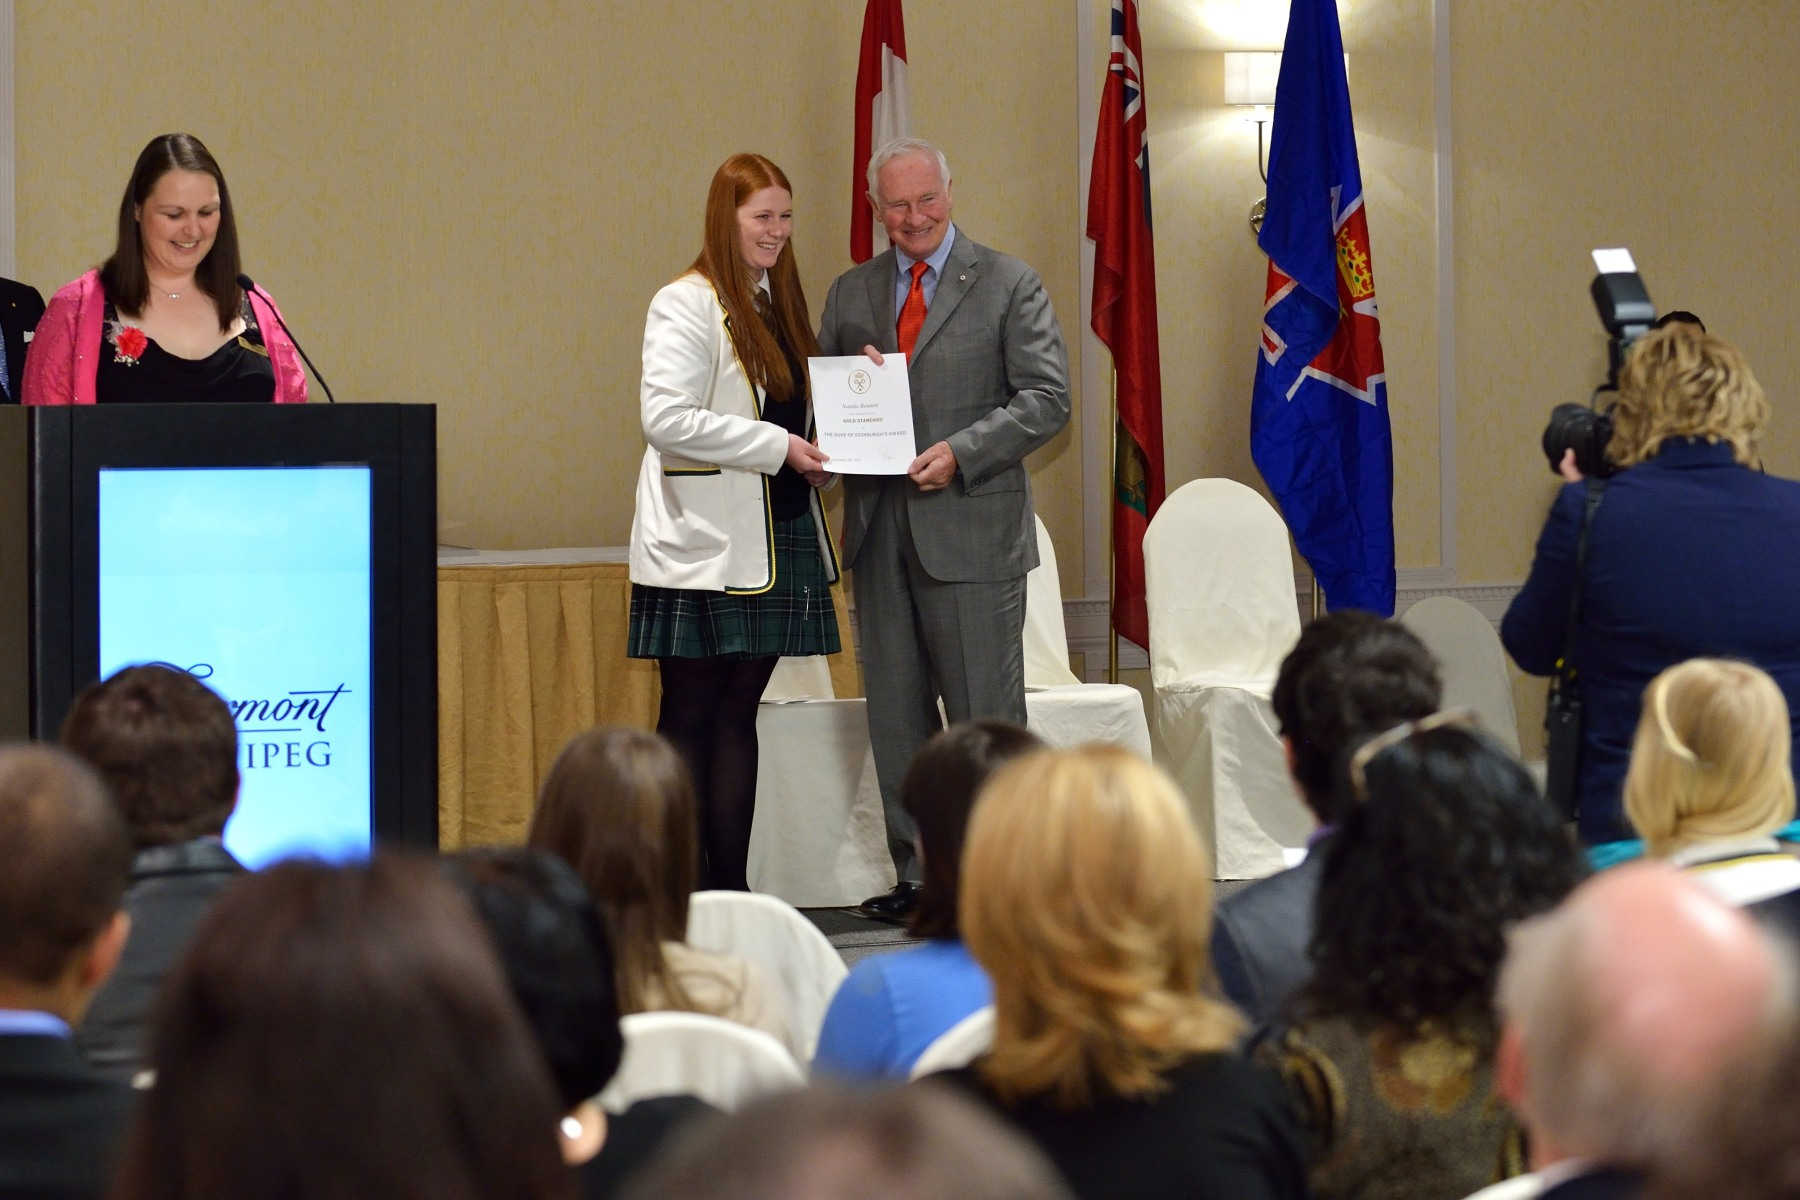 In celebration of 50 years of challenging young people in Canada, the Governor General presented The Duke of Edinburgh's Gold Award of Achievement to 25 young people from across the province of Manitoba in recognition for their dedication and personal accomplishments within their communities.